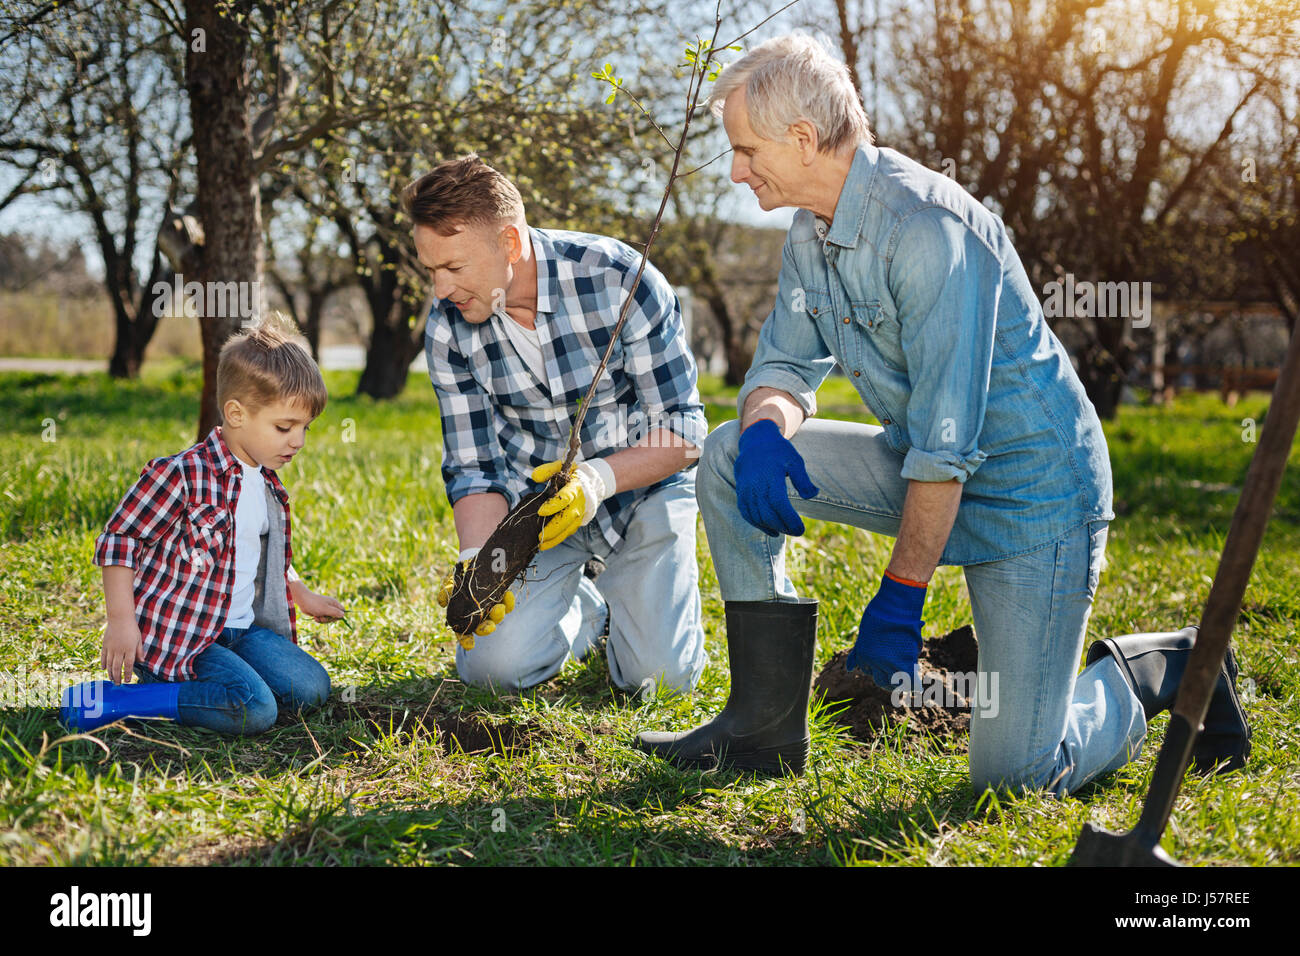 Older family members teaching kid how to care about nature - Stock Image